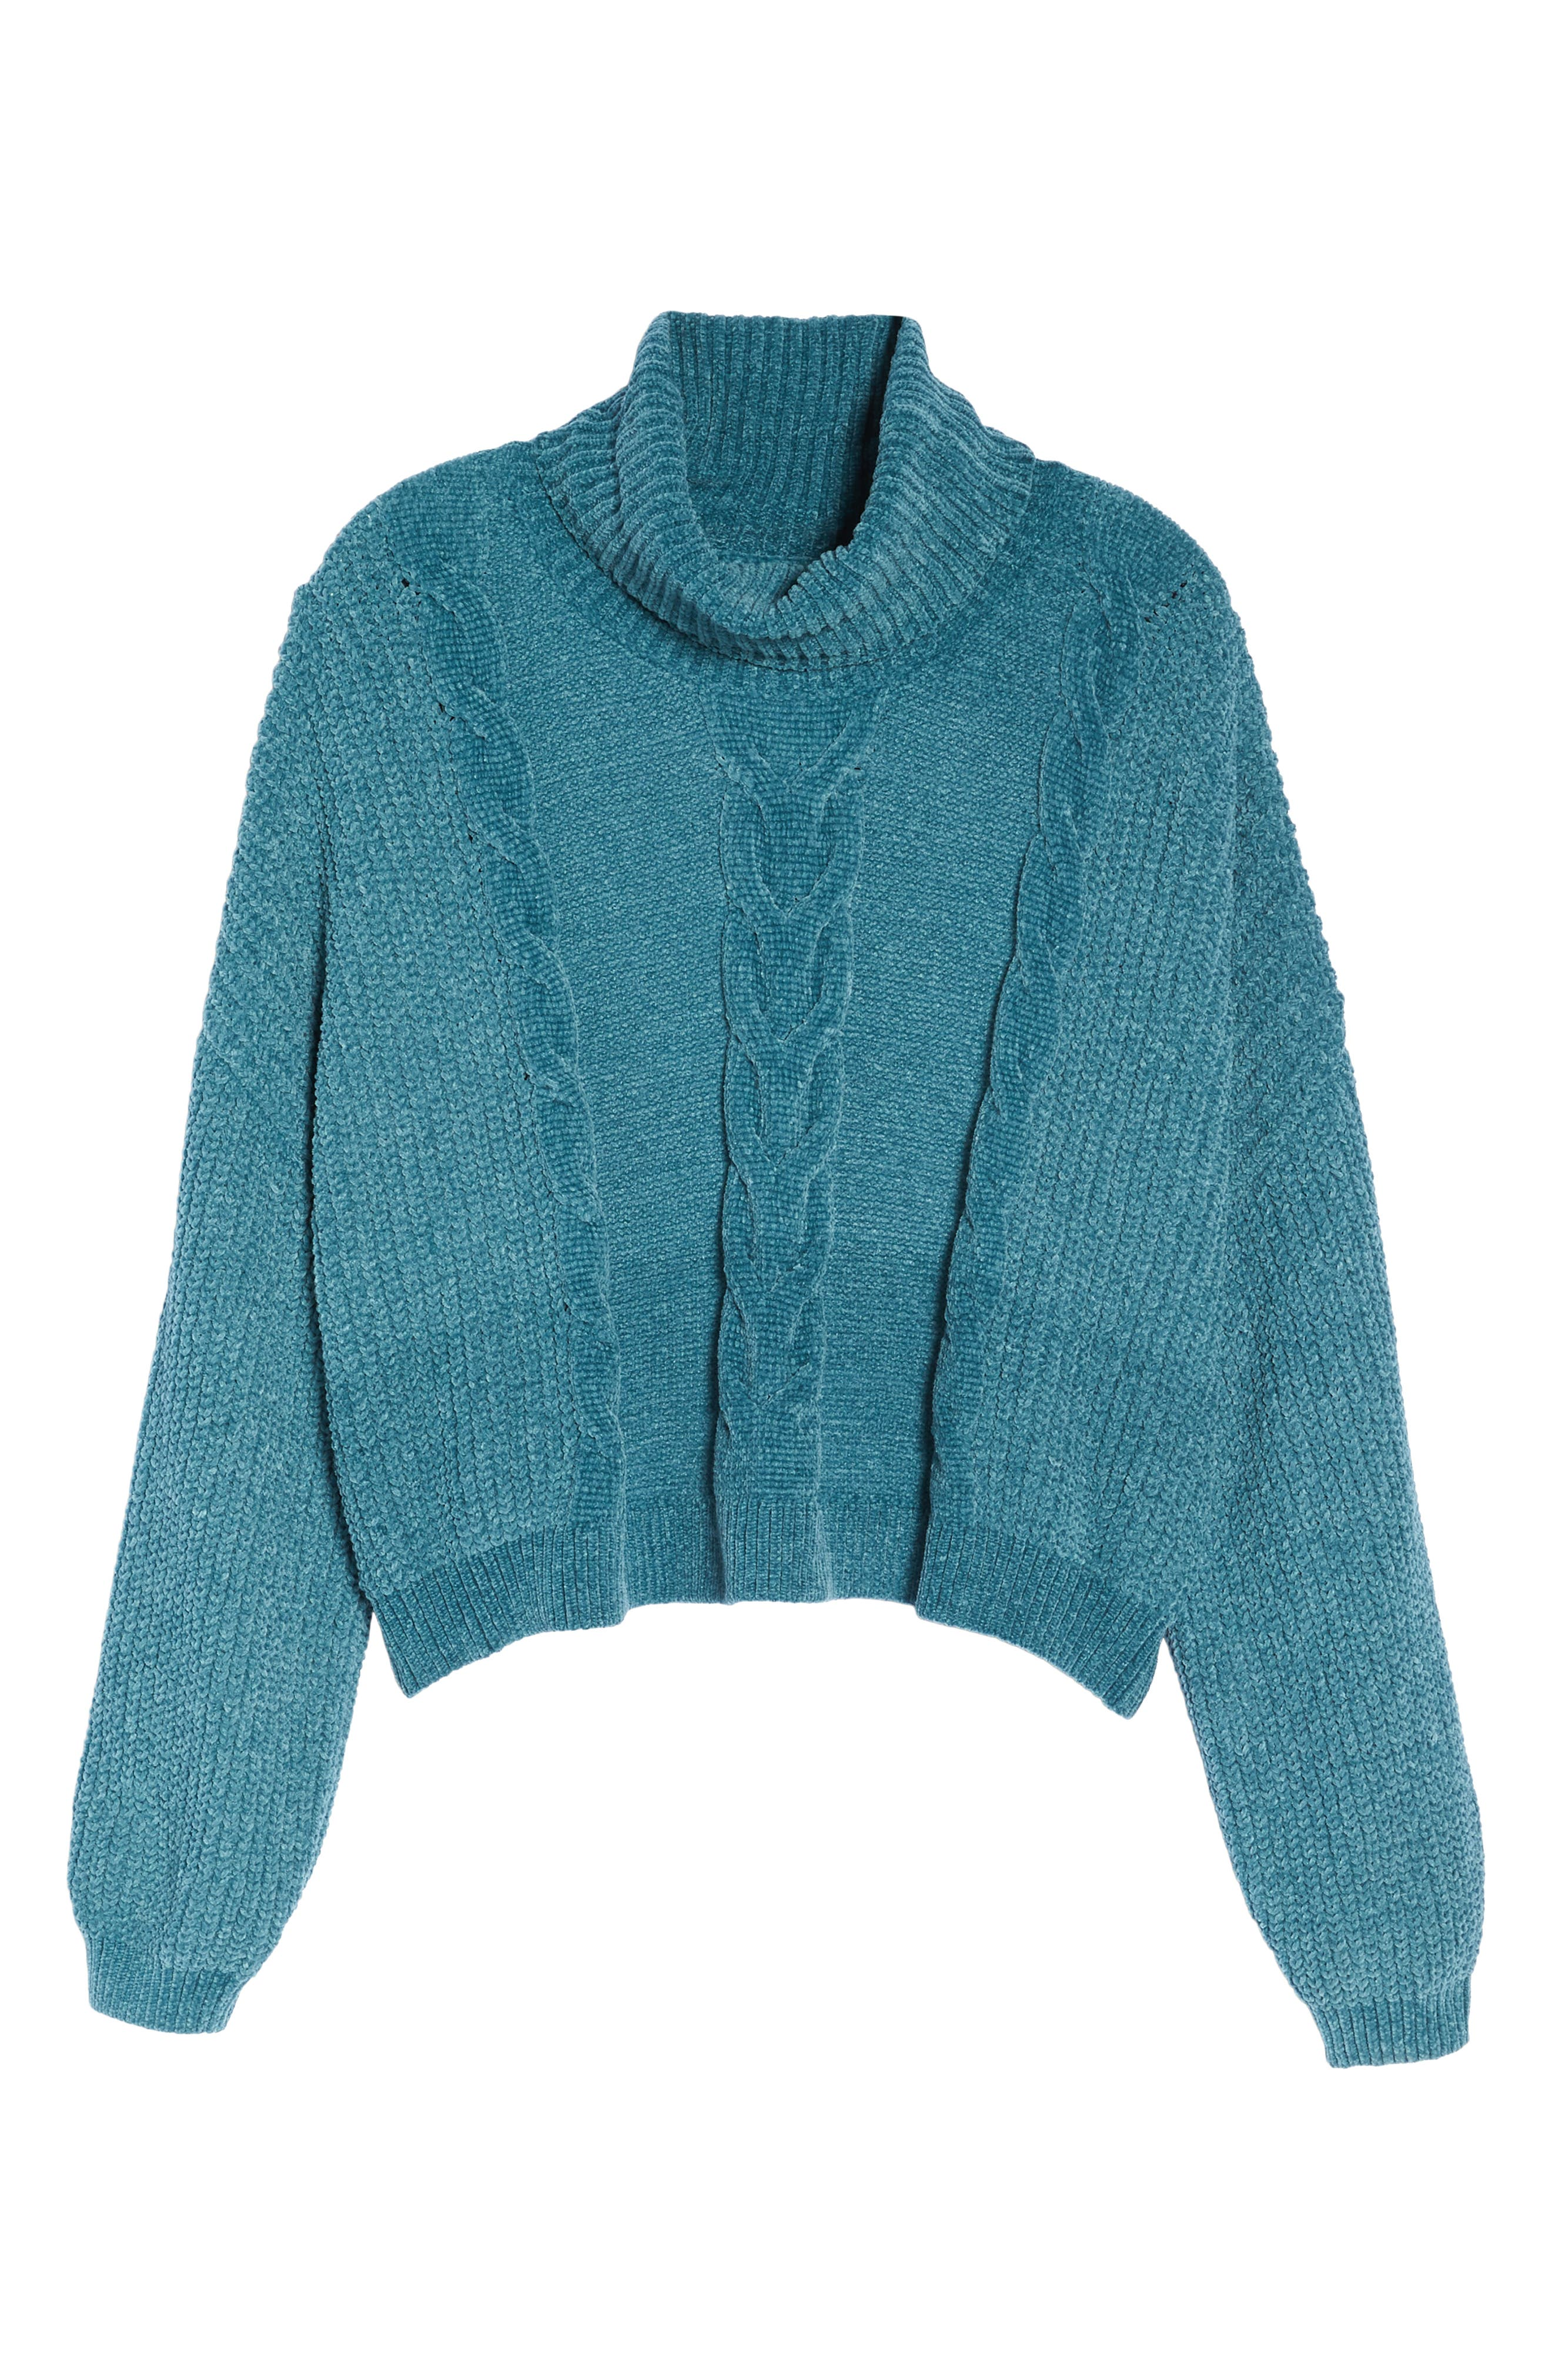 Cable Knit Chenille Sweater,                             Alternate thumbnail 6, color,                             TEAL HYDRO